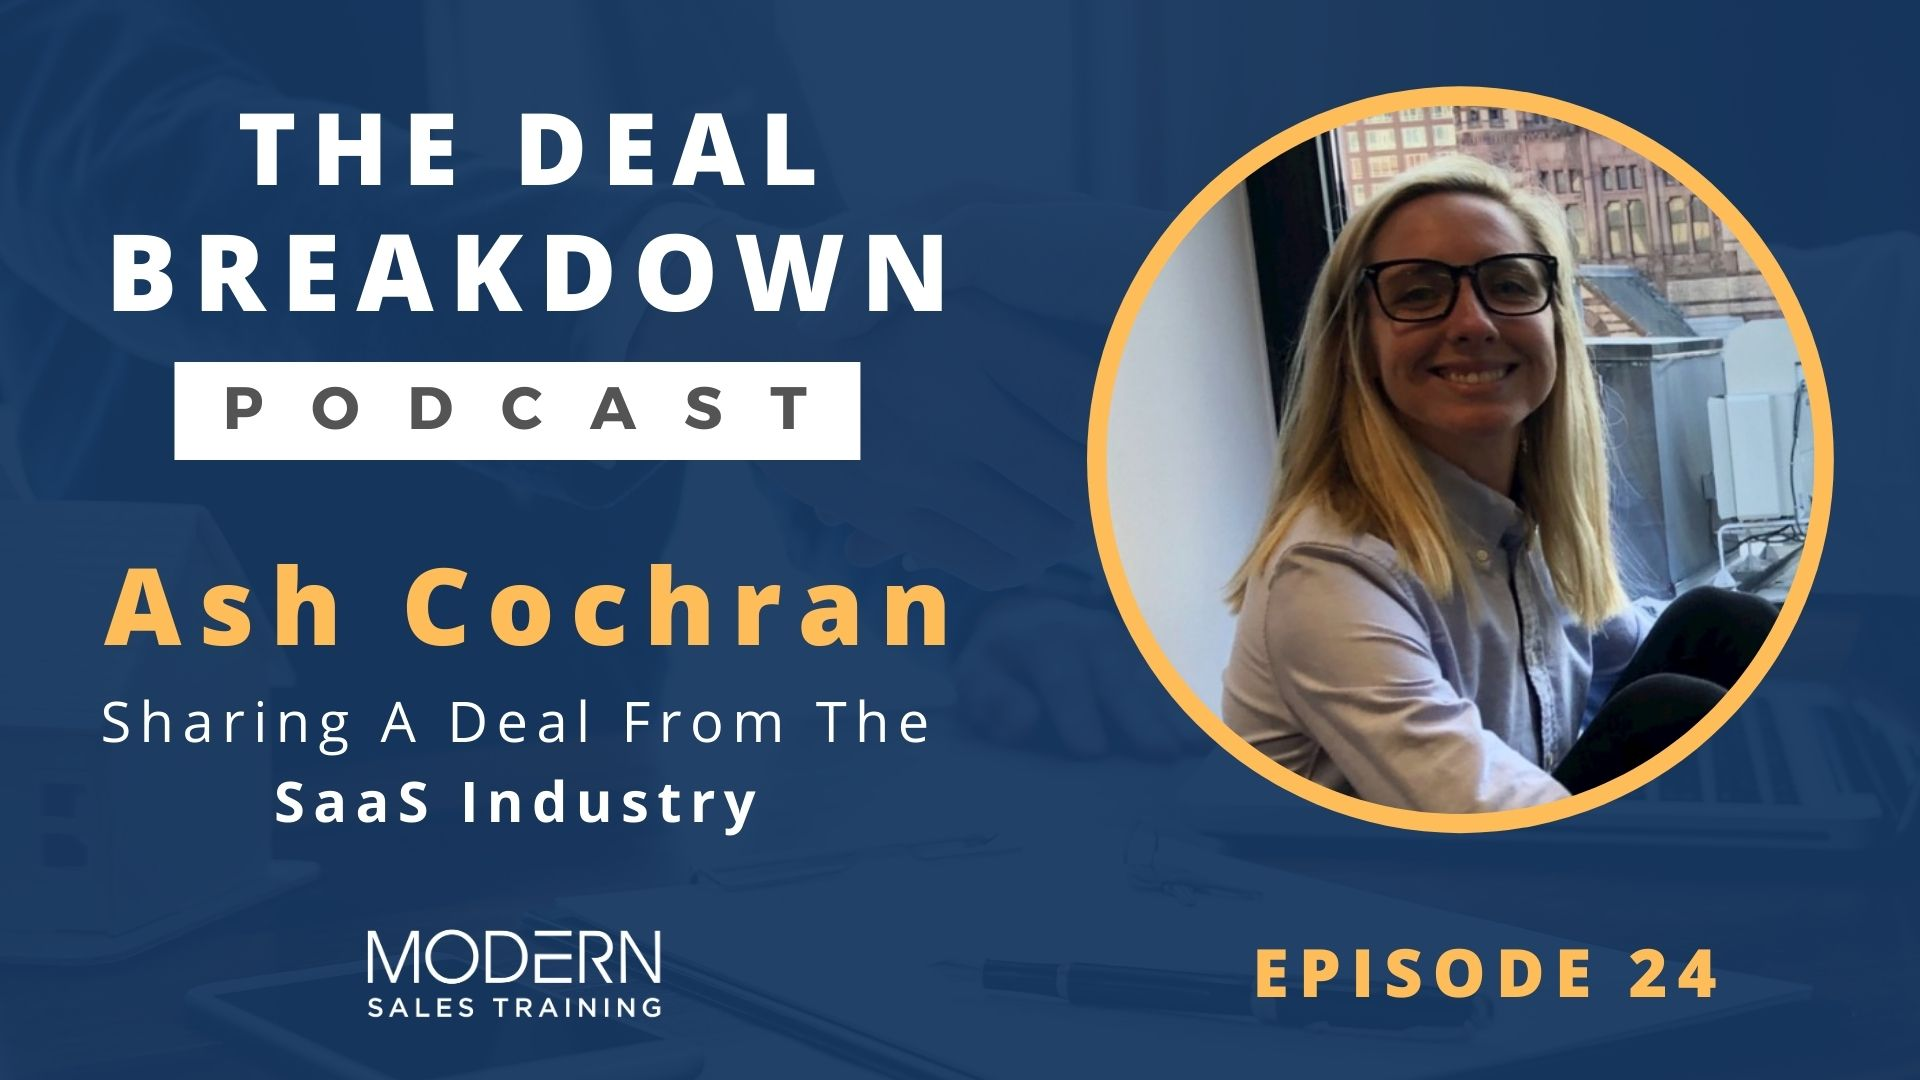 The-Deal-Breakdown-Podcast-Modern-Sales-Training-Ash-Cochran